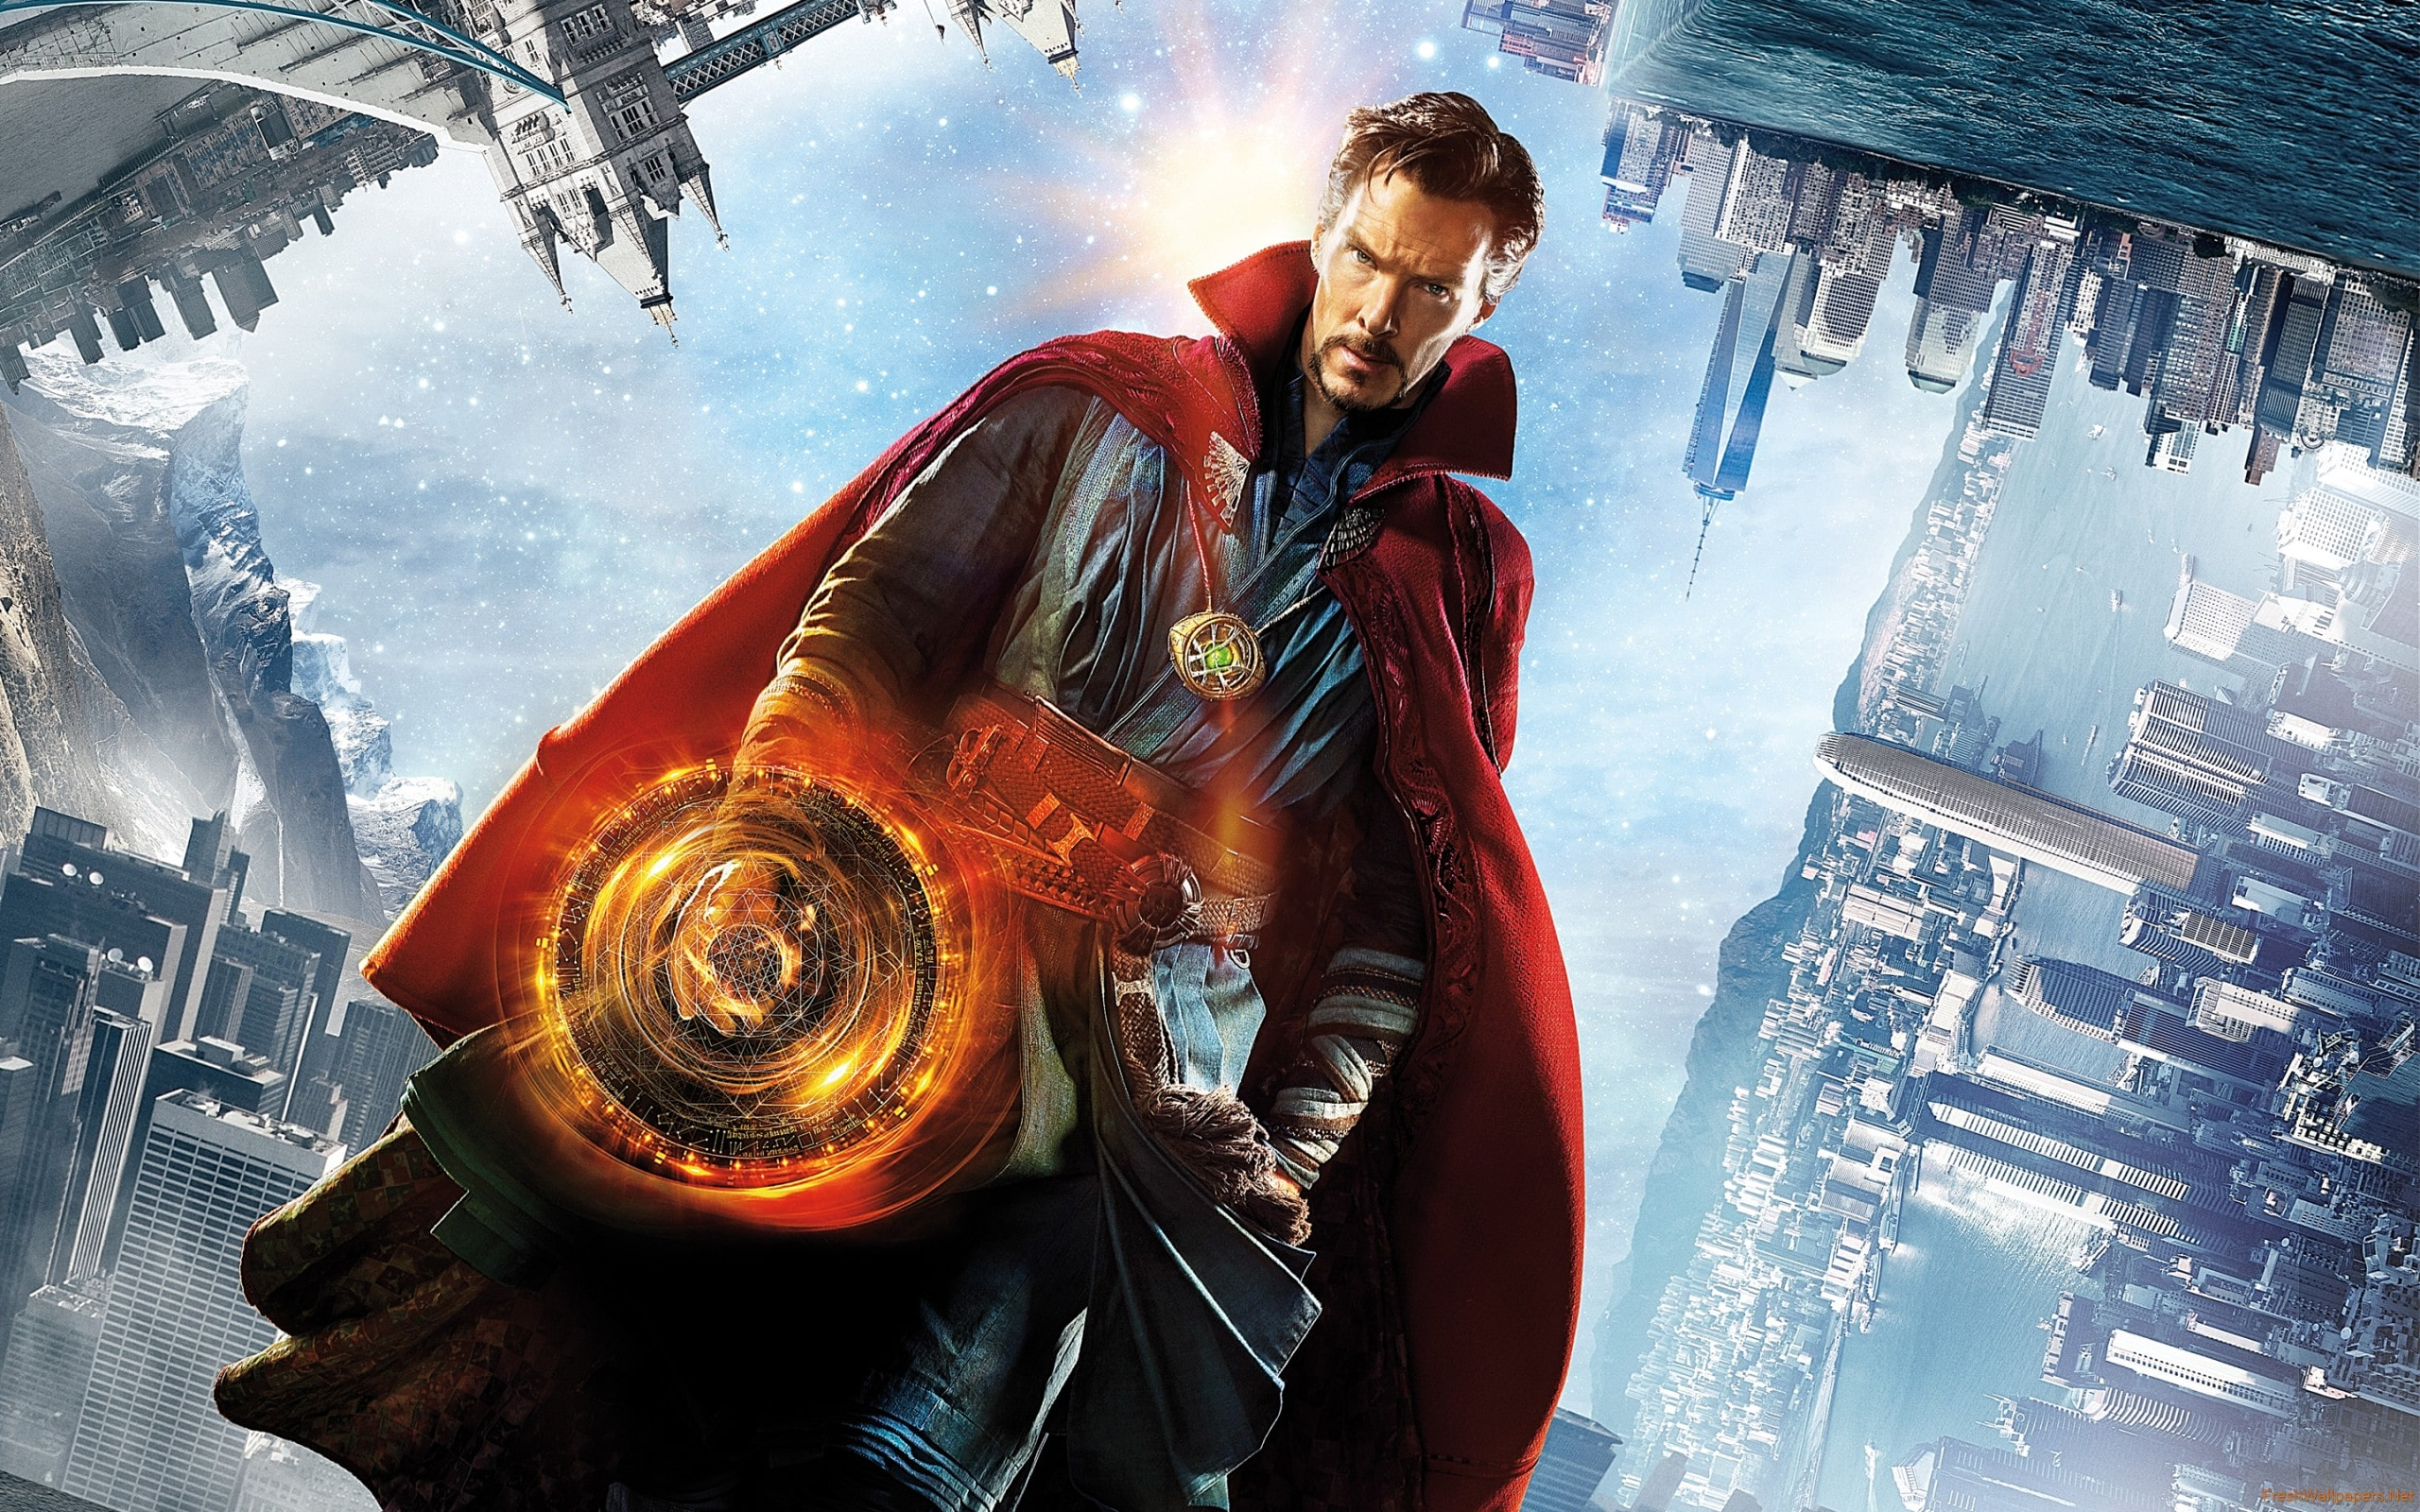 doctor strange hd desktop wallpapers | 7wallpapers